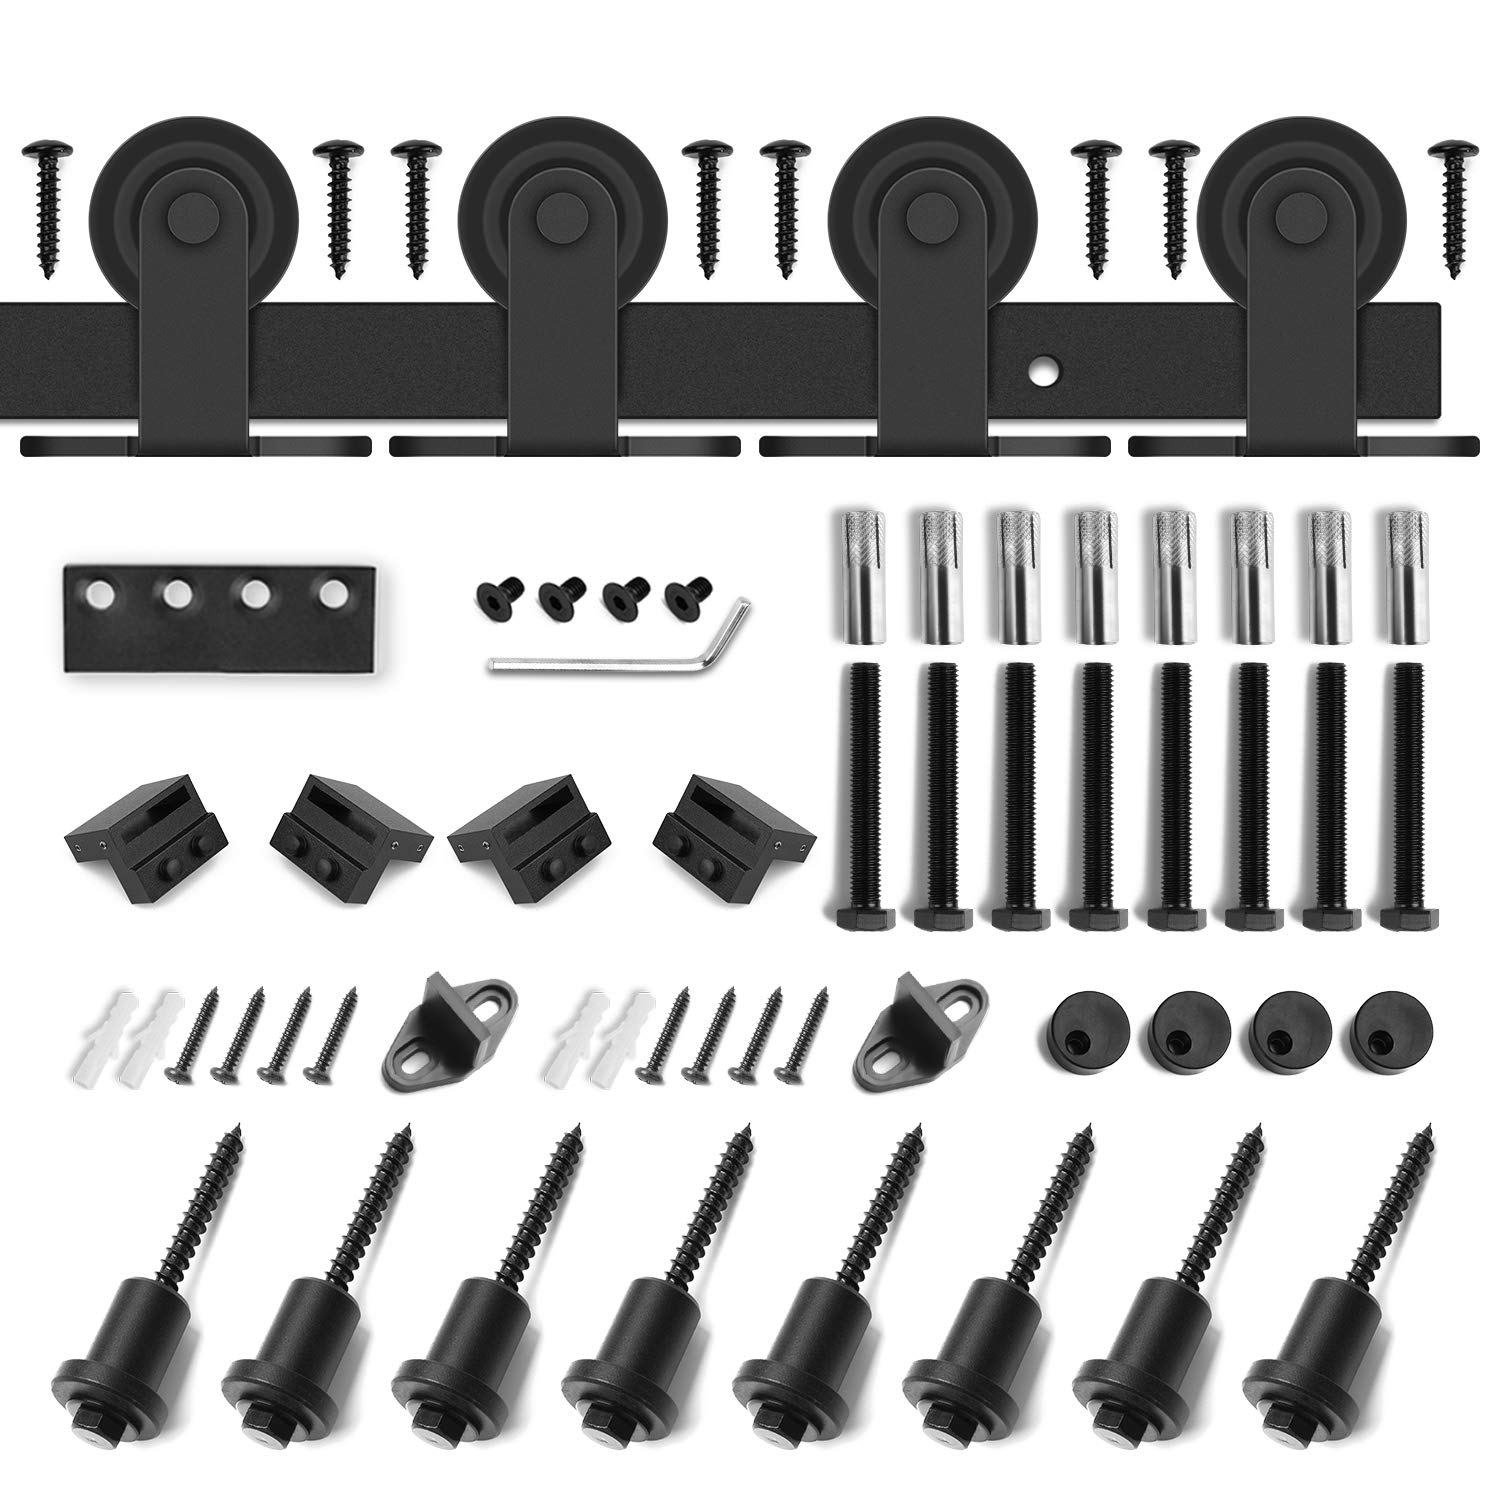 10ft Heavy Duty Sturdy Double Door Sliding Barn Door Hardware Kit - Super Smoothly and Quietly - Simple and Easy to Install - Includes Step-by-Step Instruction -Fit 30'' Wide Door Panel(T Shape Hanger) by SMARTSTANDARD (Image #3)